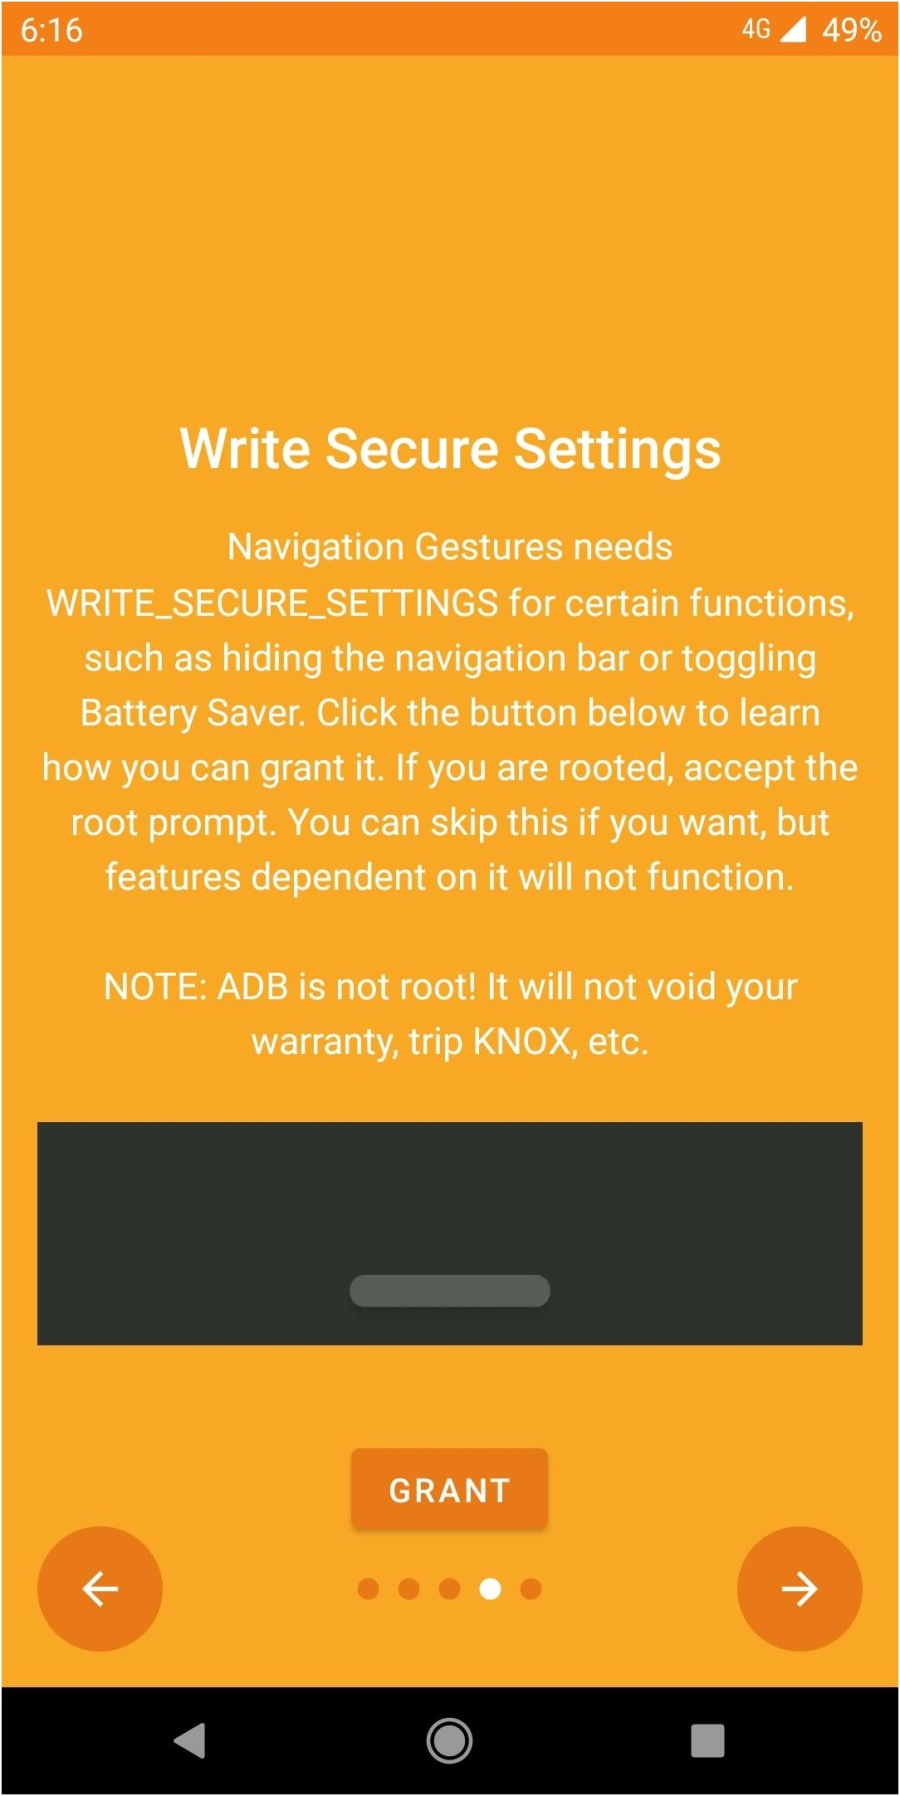 secure settings - Navigation Gesture